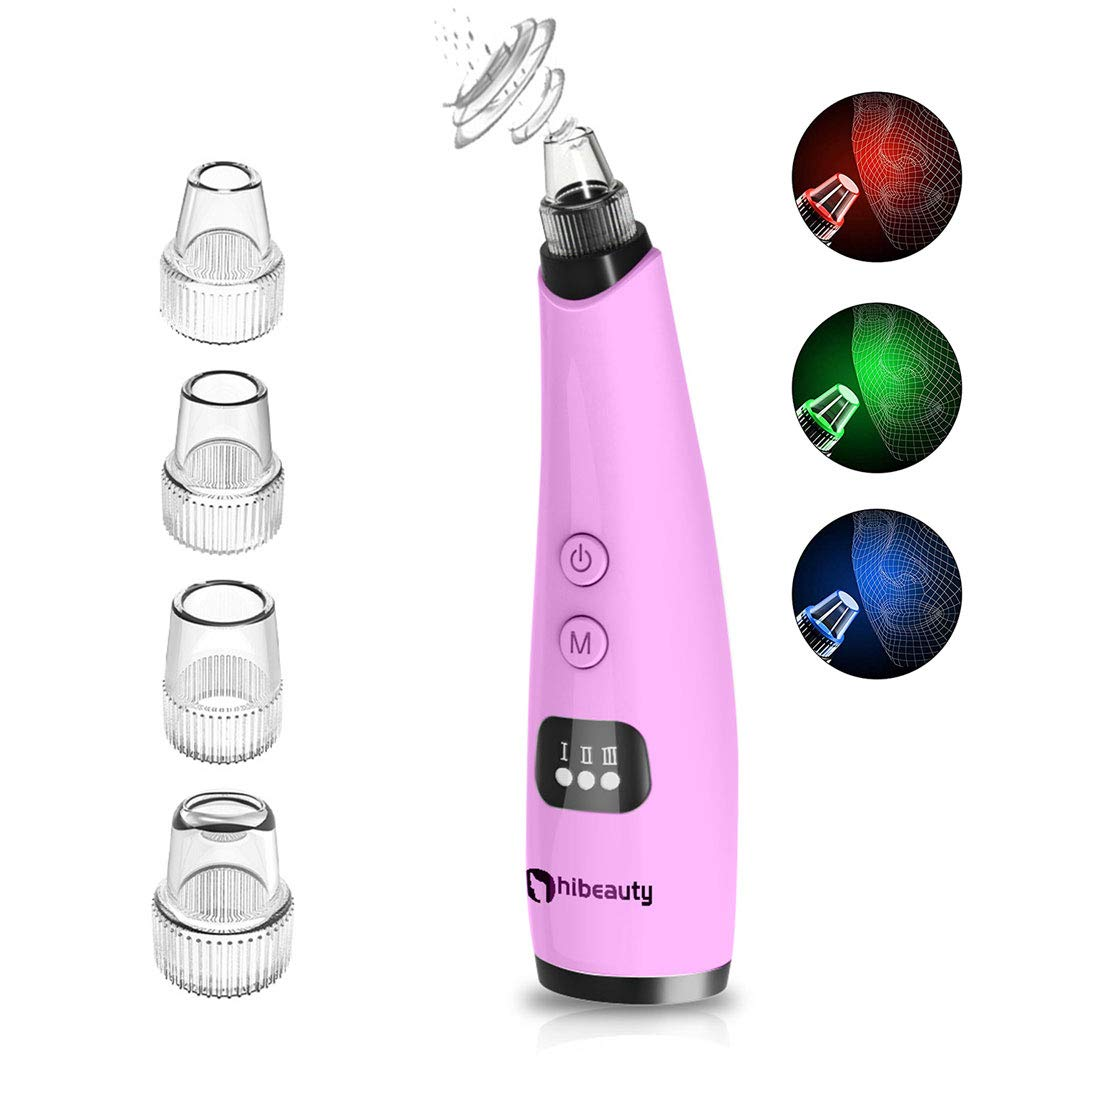 Hibeauty Blackhead Remover, Pore Vacuum Cleaner Electric Remove Blackheads and Whiteheads Beauty Device with 4 Hole-Shaped Vacuum Cleaners 3 Adjustable Suction and Three Different Color Beauty Lights